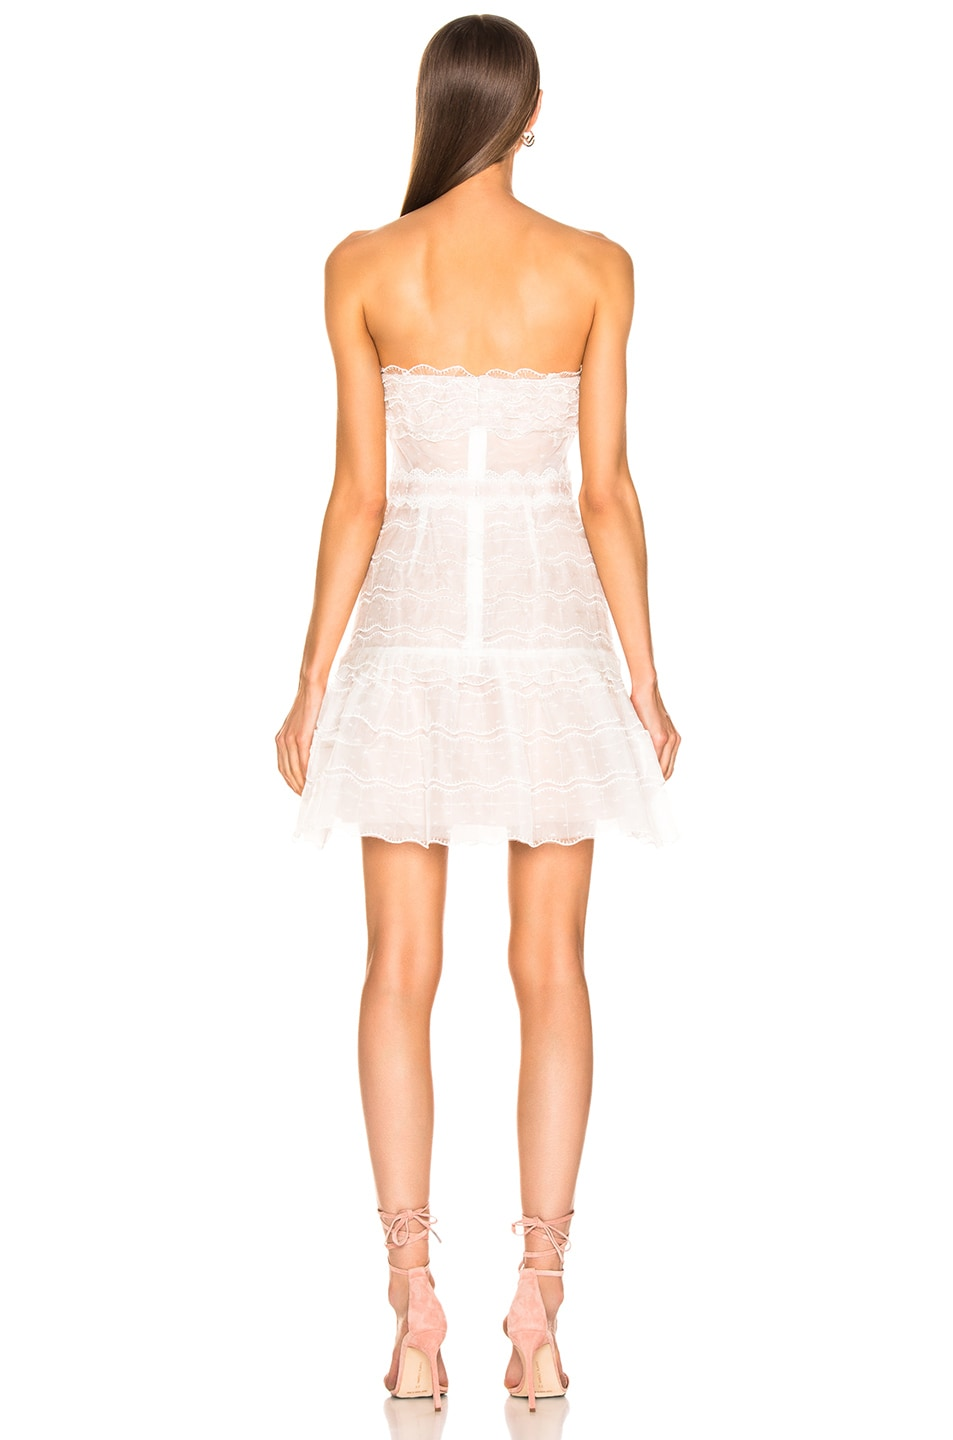 Image 3 of Alexis Adlai Dress in White